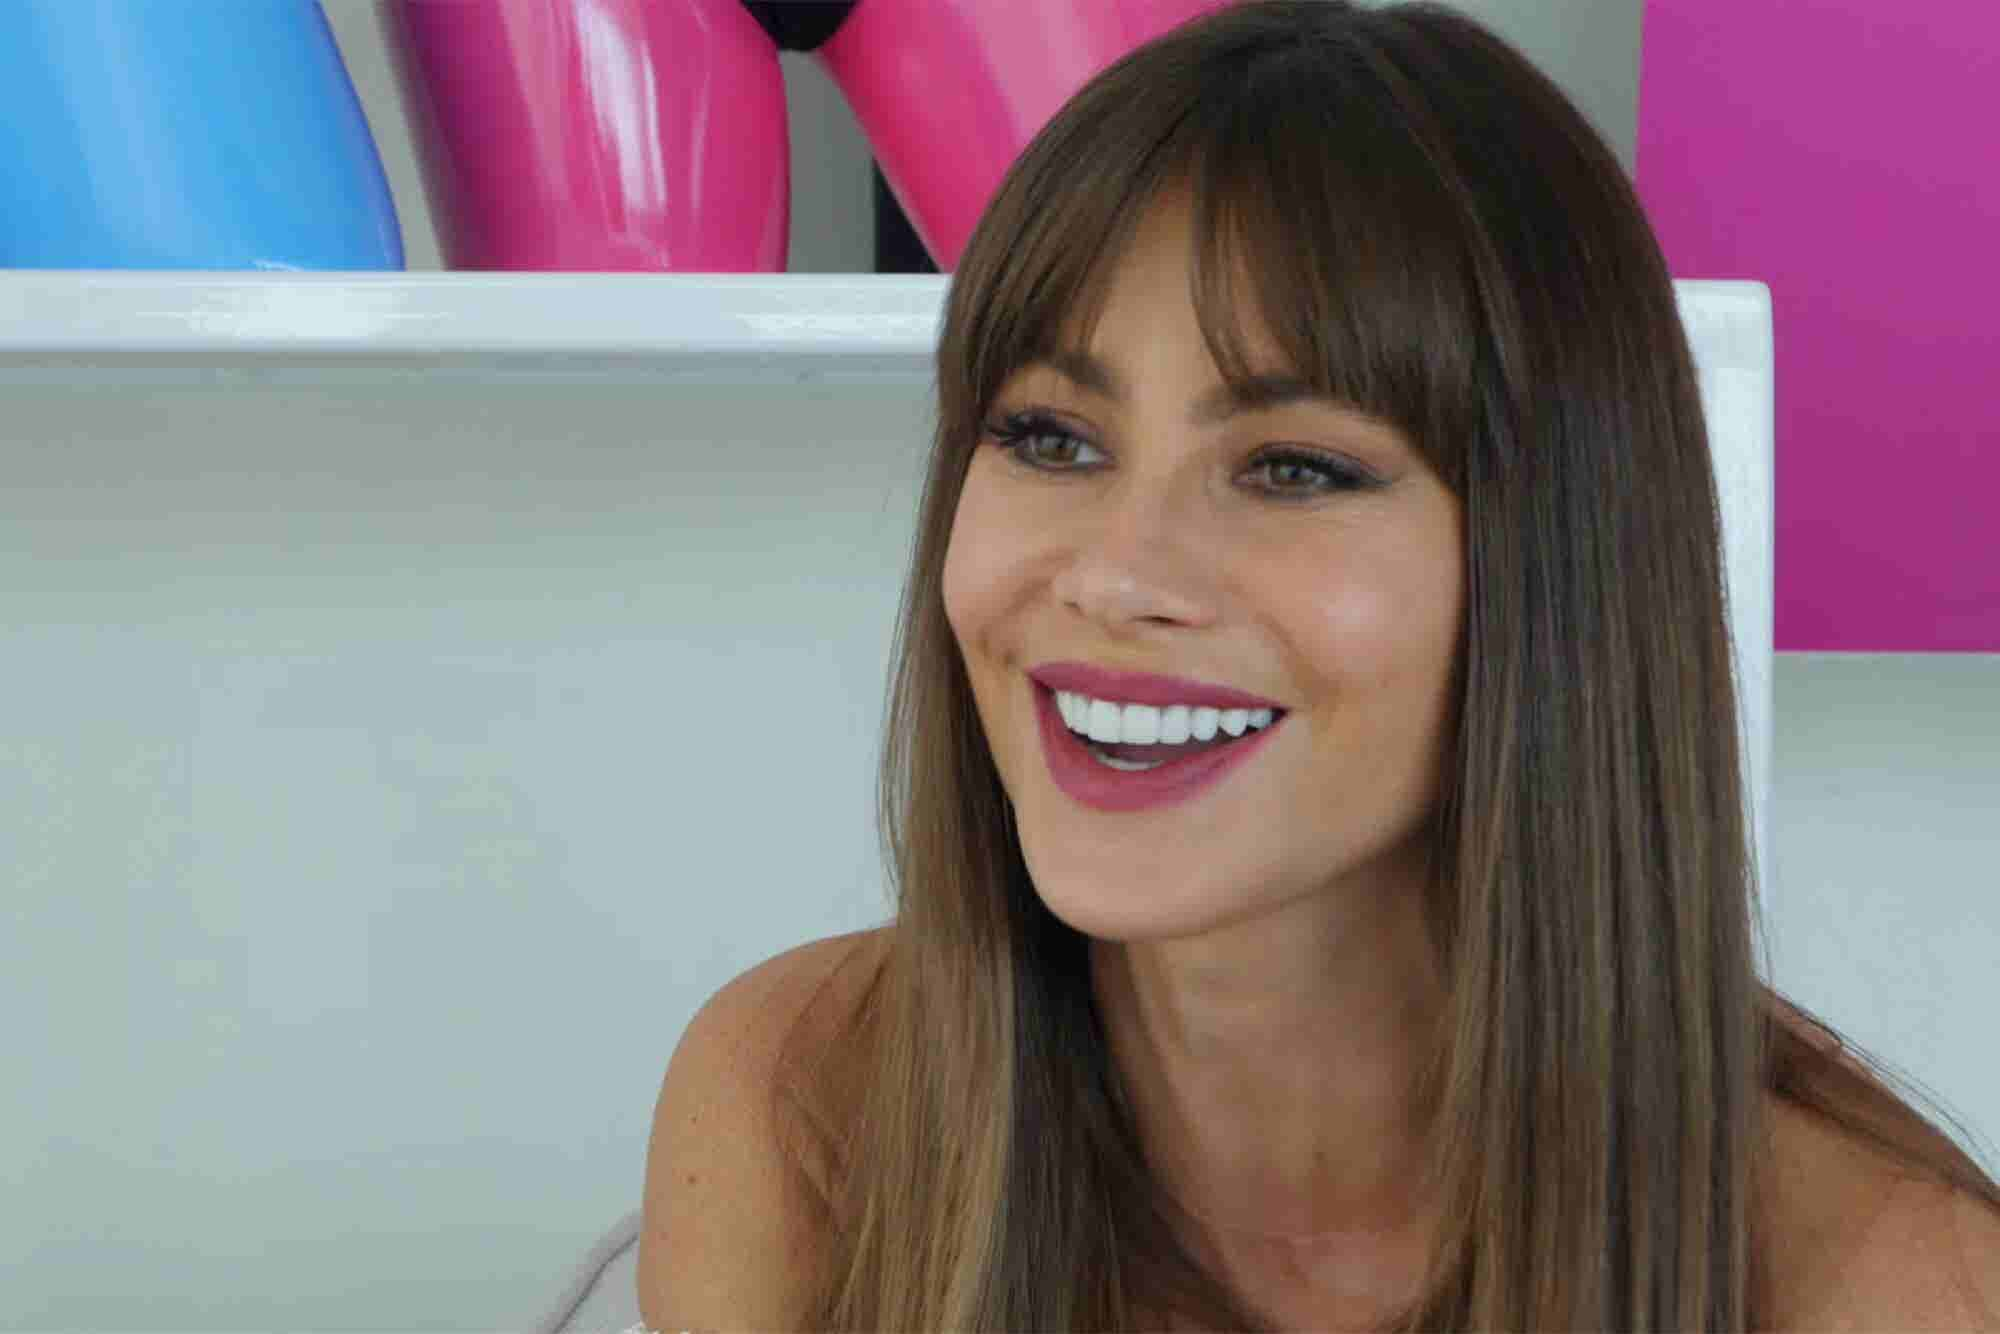 Sofia Vergara, the Highest Paid TV Actress, Shares How She Makes Business Decisions